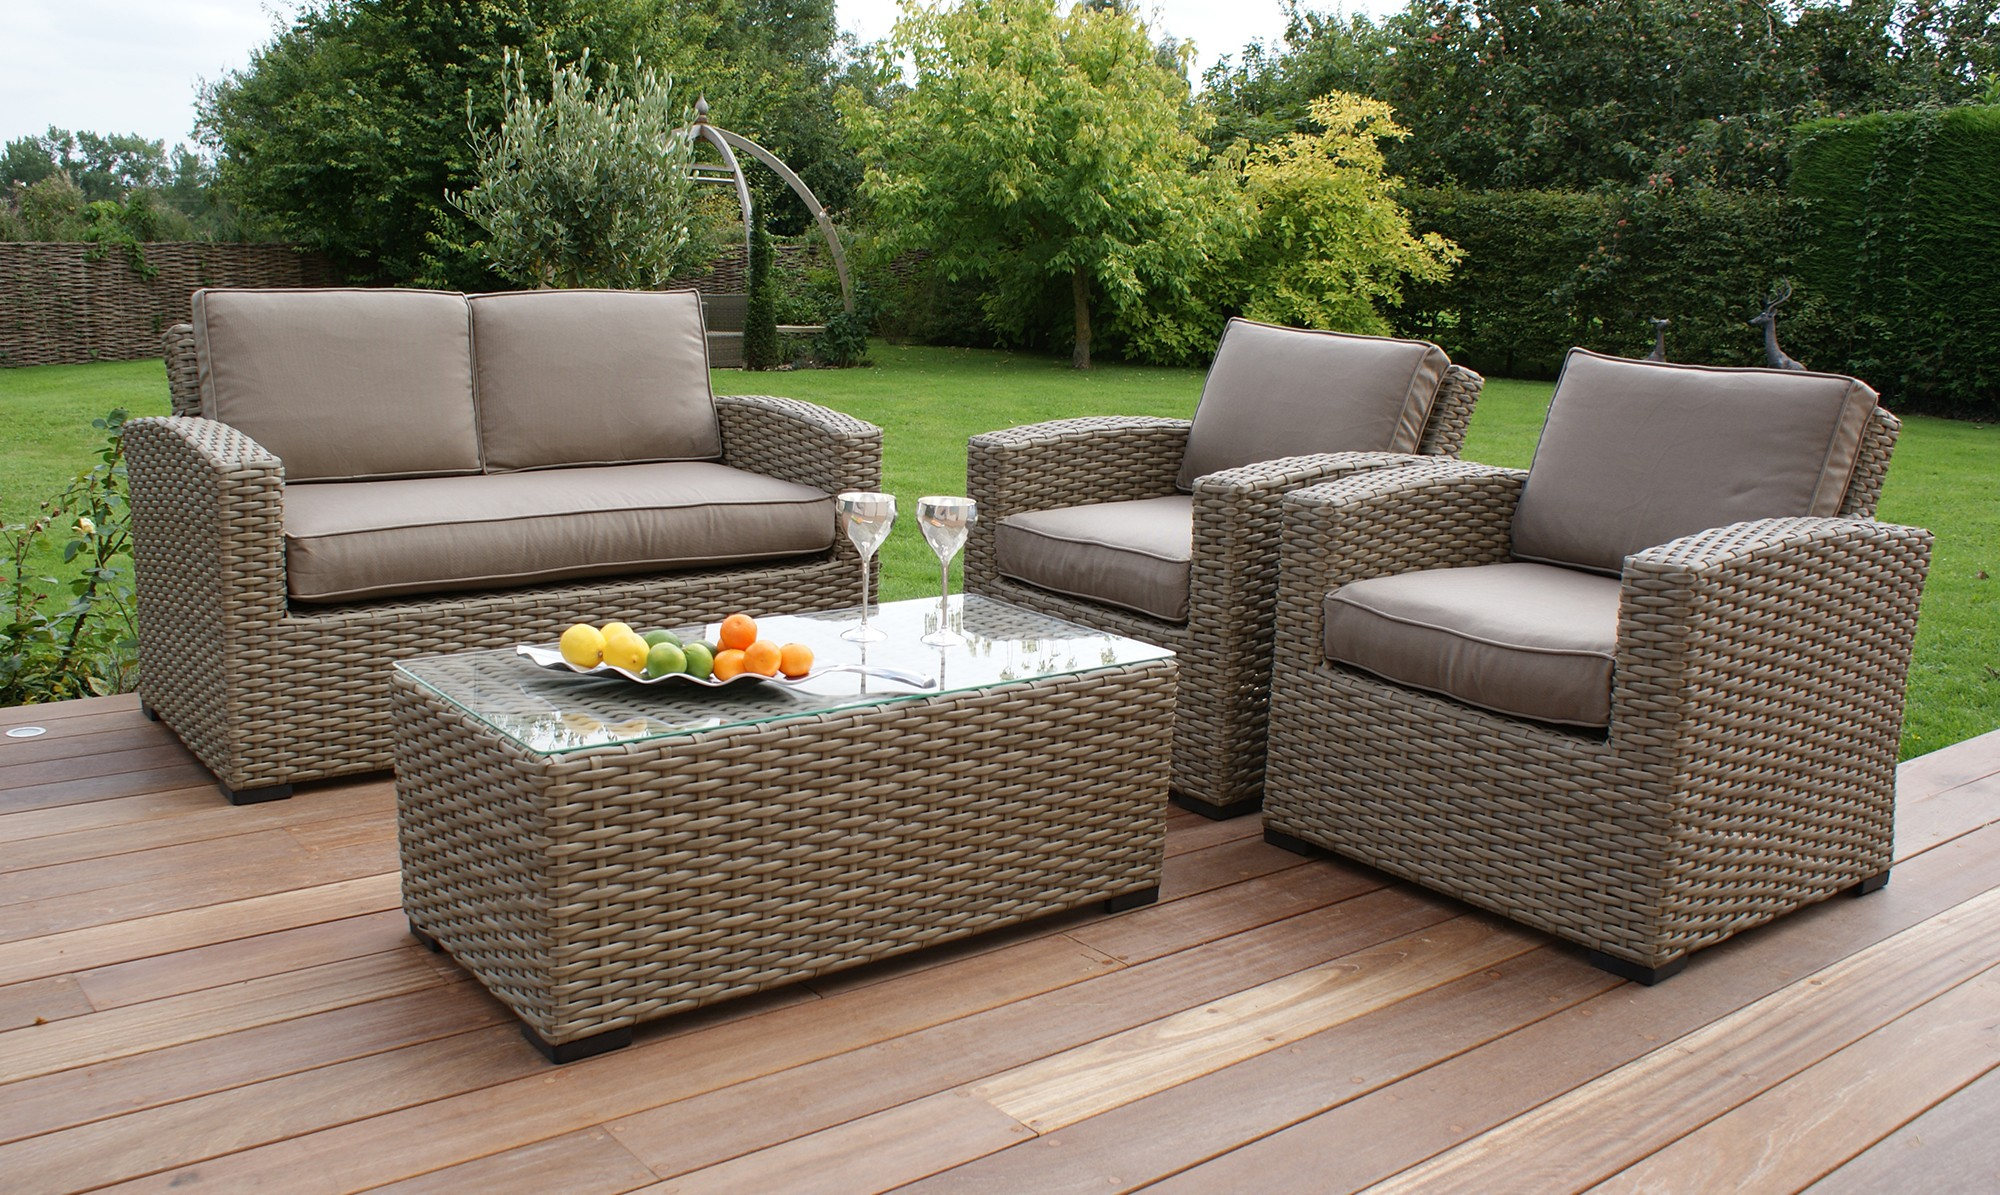 rattan garden furniture antilles - 2 seat sofa natural rattan garden set . NITAHDN